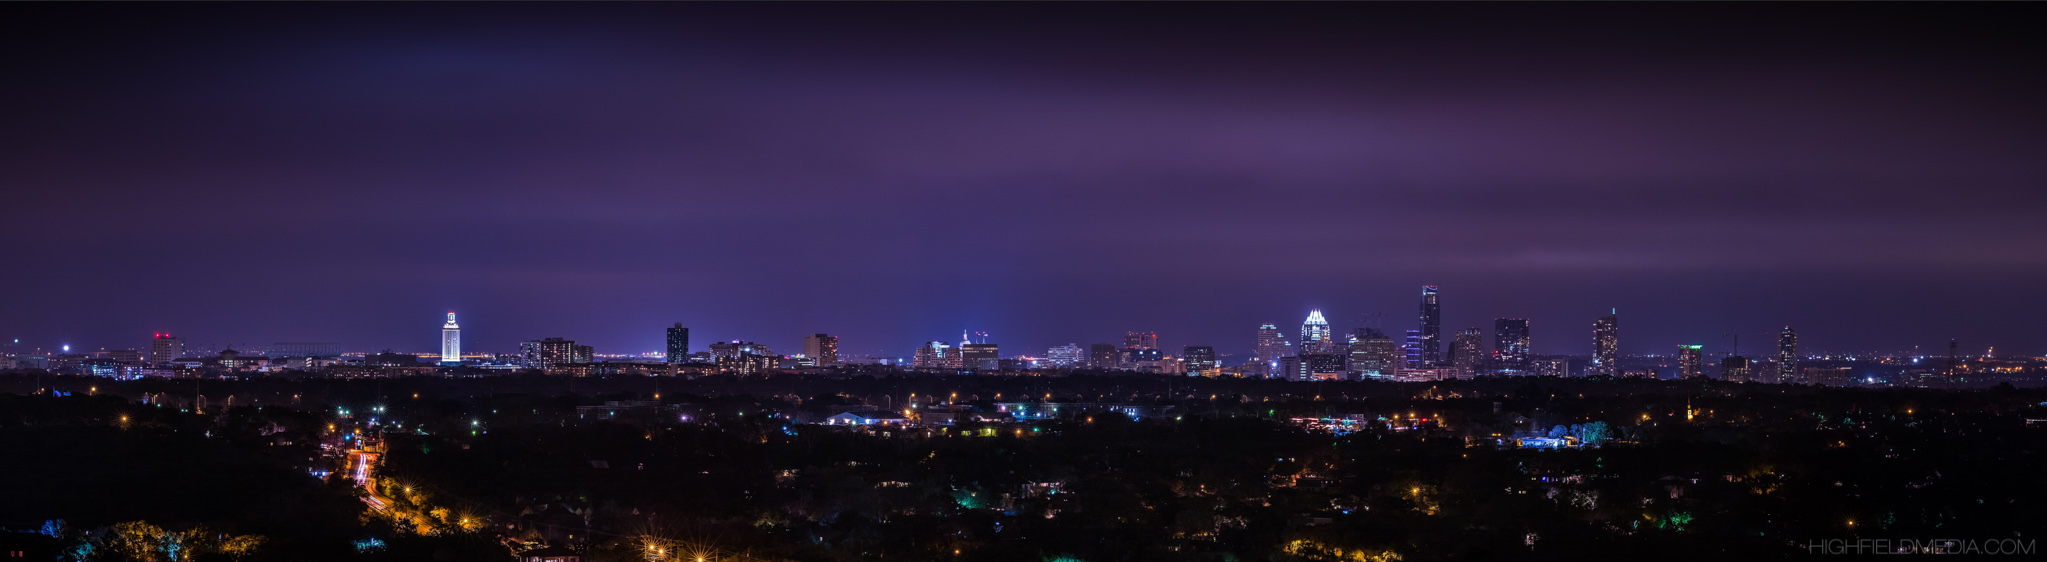 20140202-skyline_mount_bonnell_crop.jpg